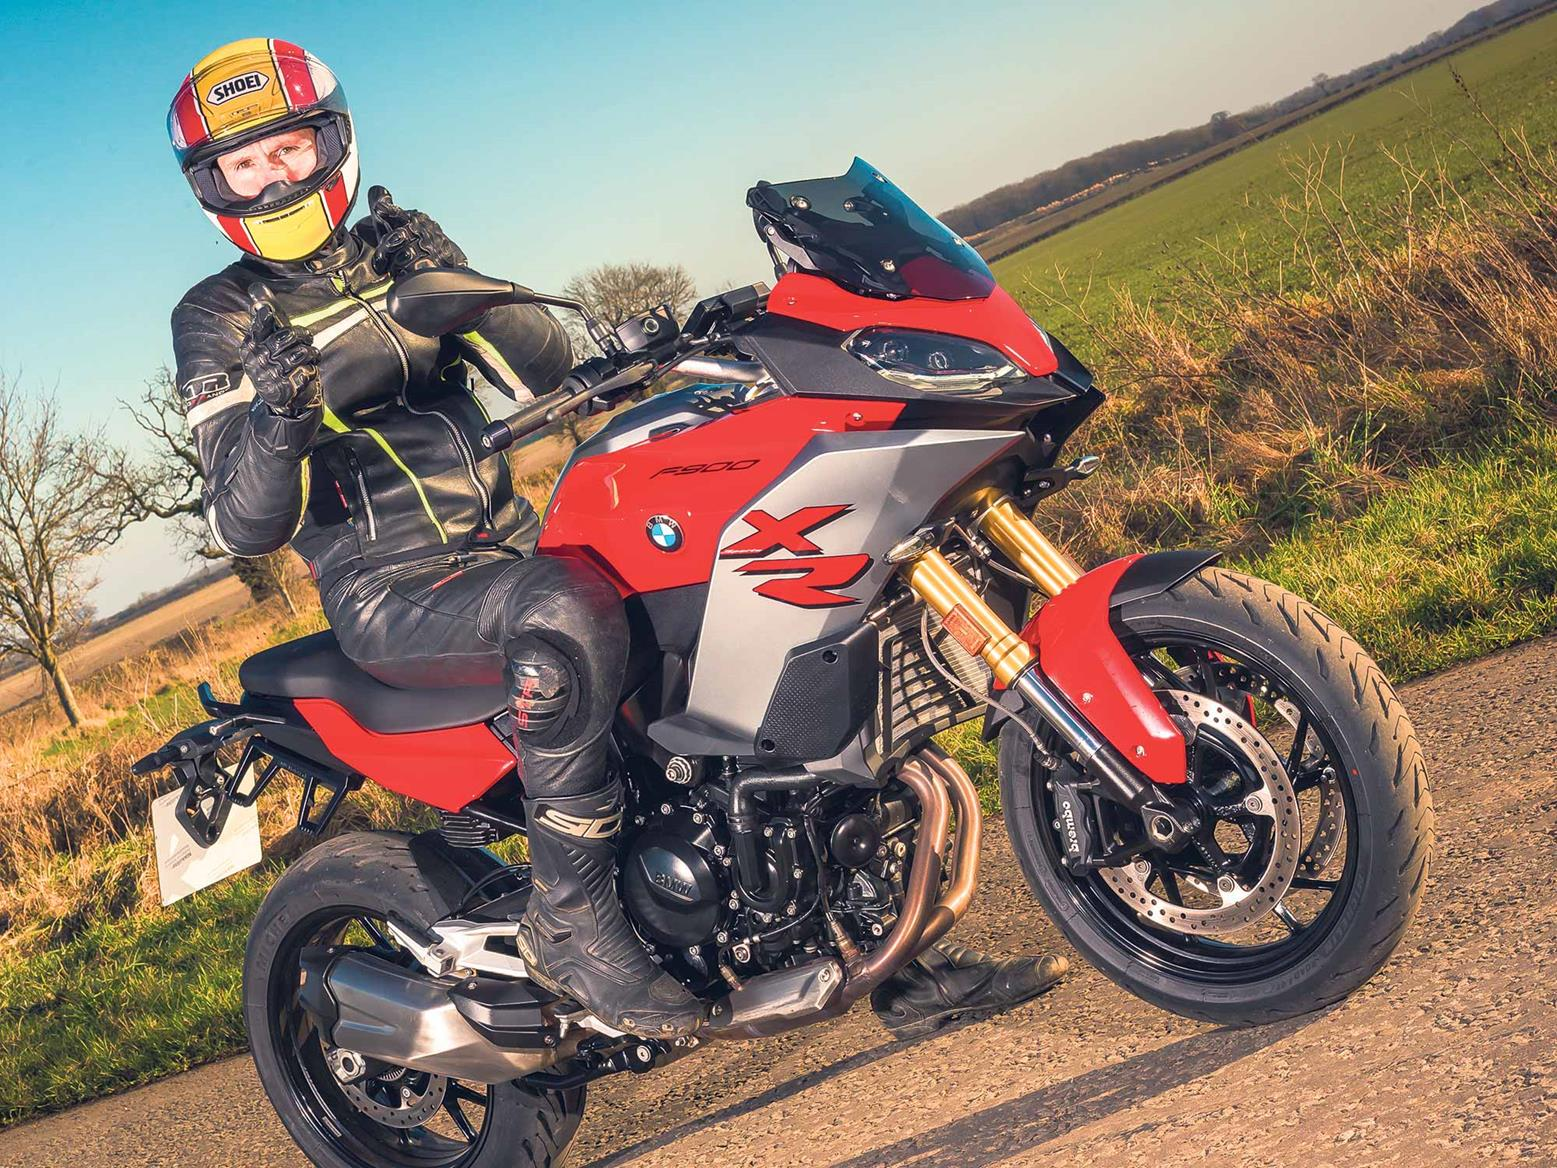 Tester Mike Armitage with the BMW F900XR